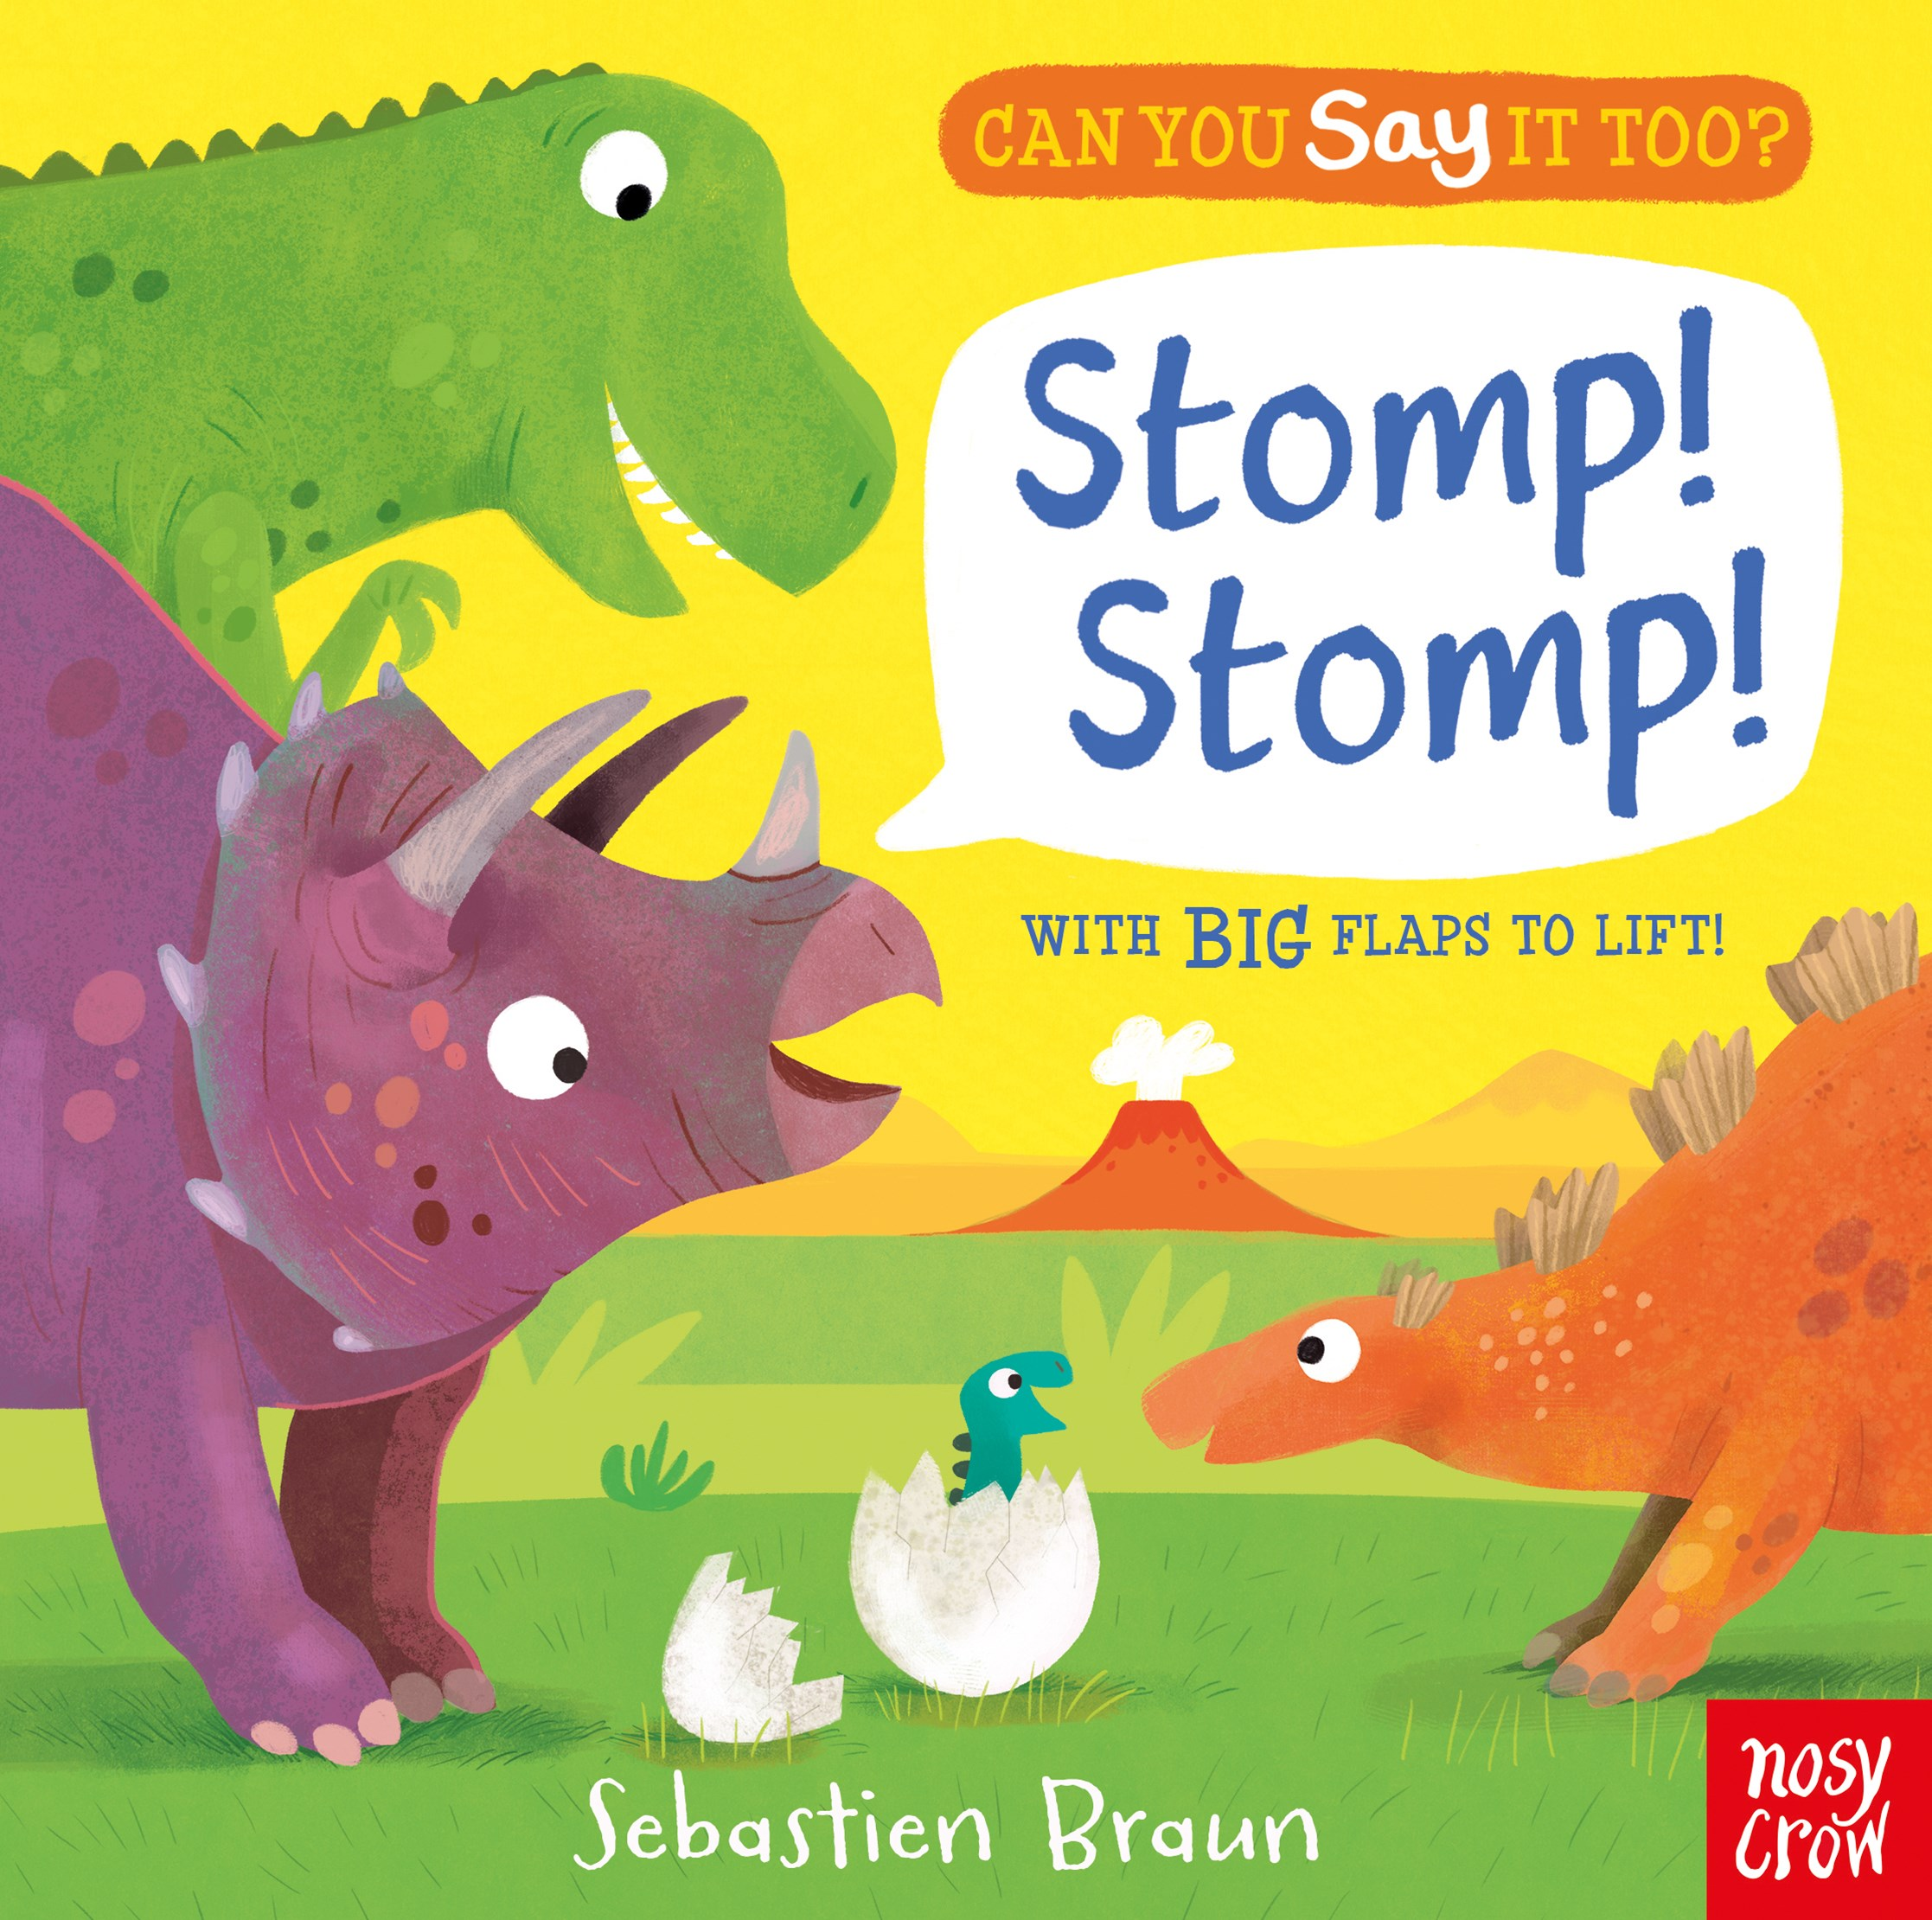 Can You Say it Too: Stomp Stomp